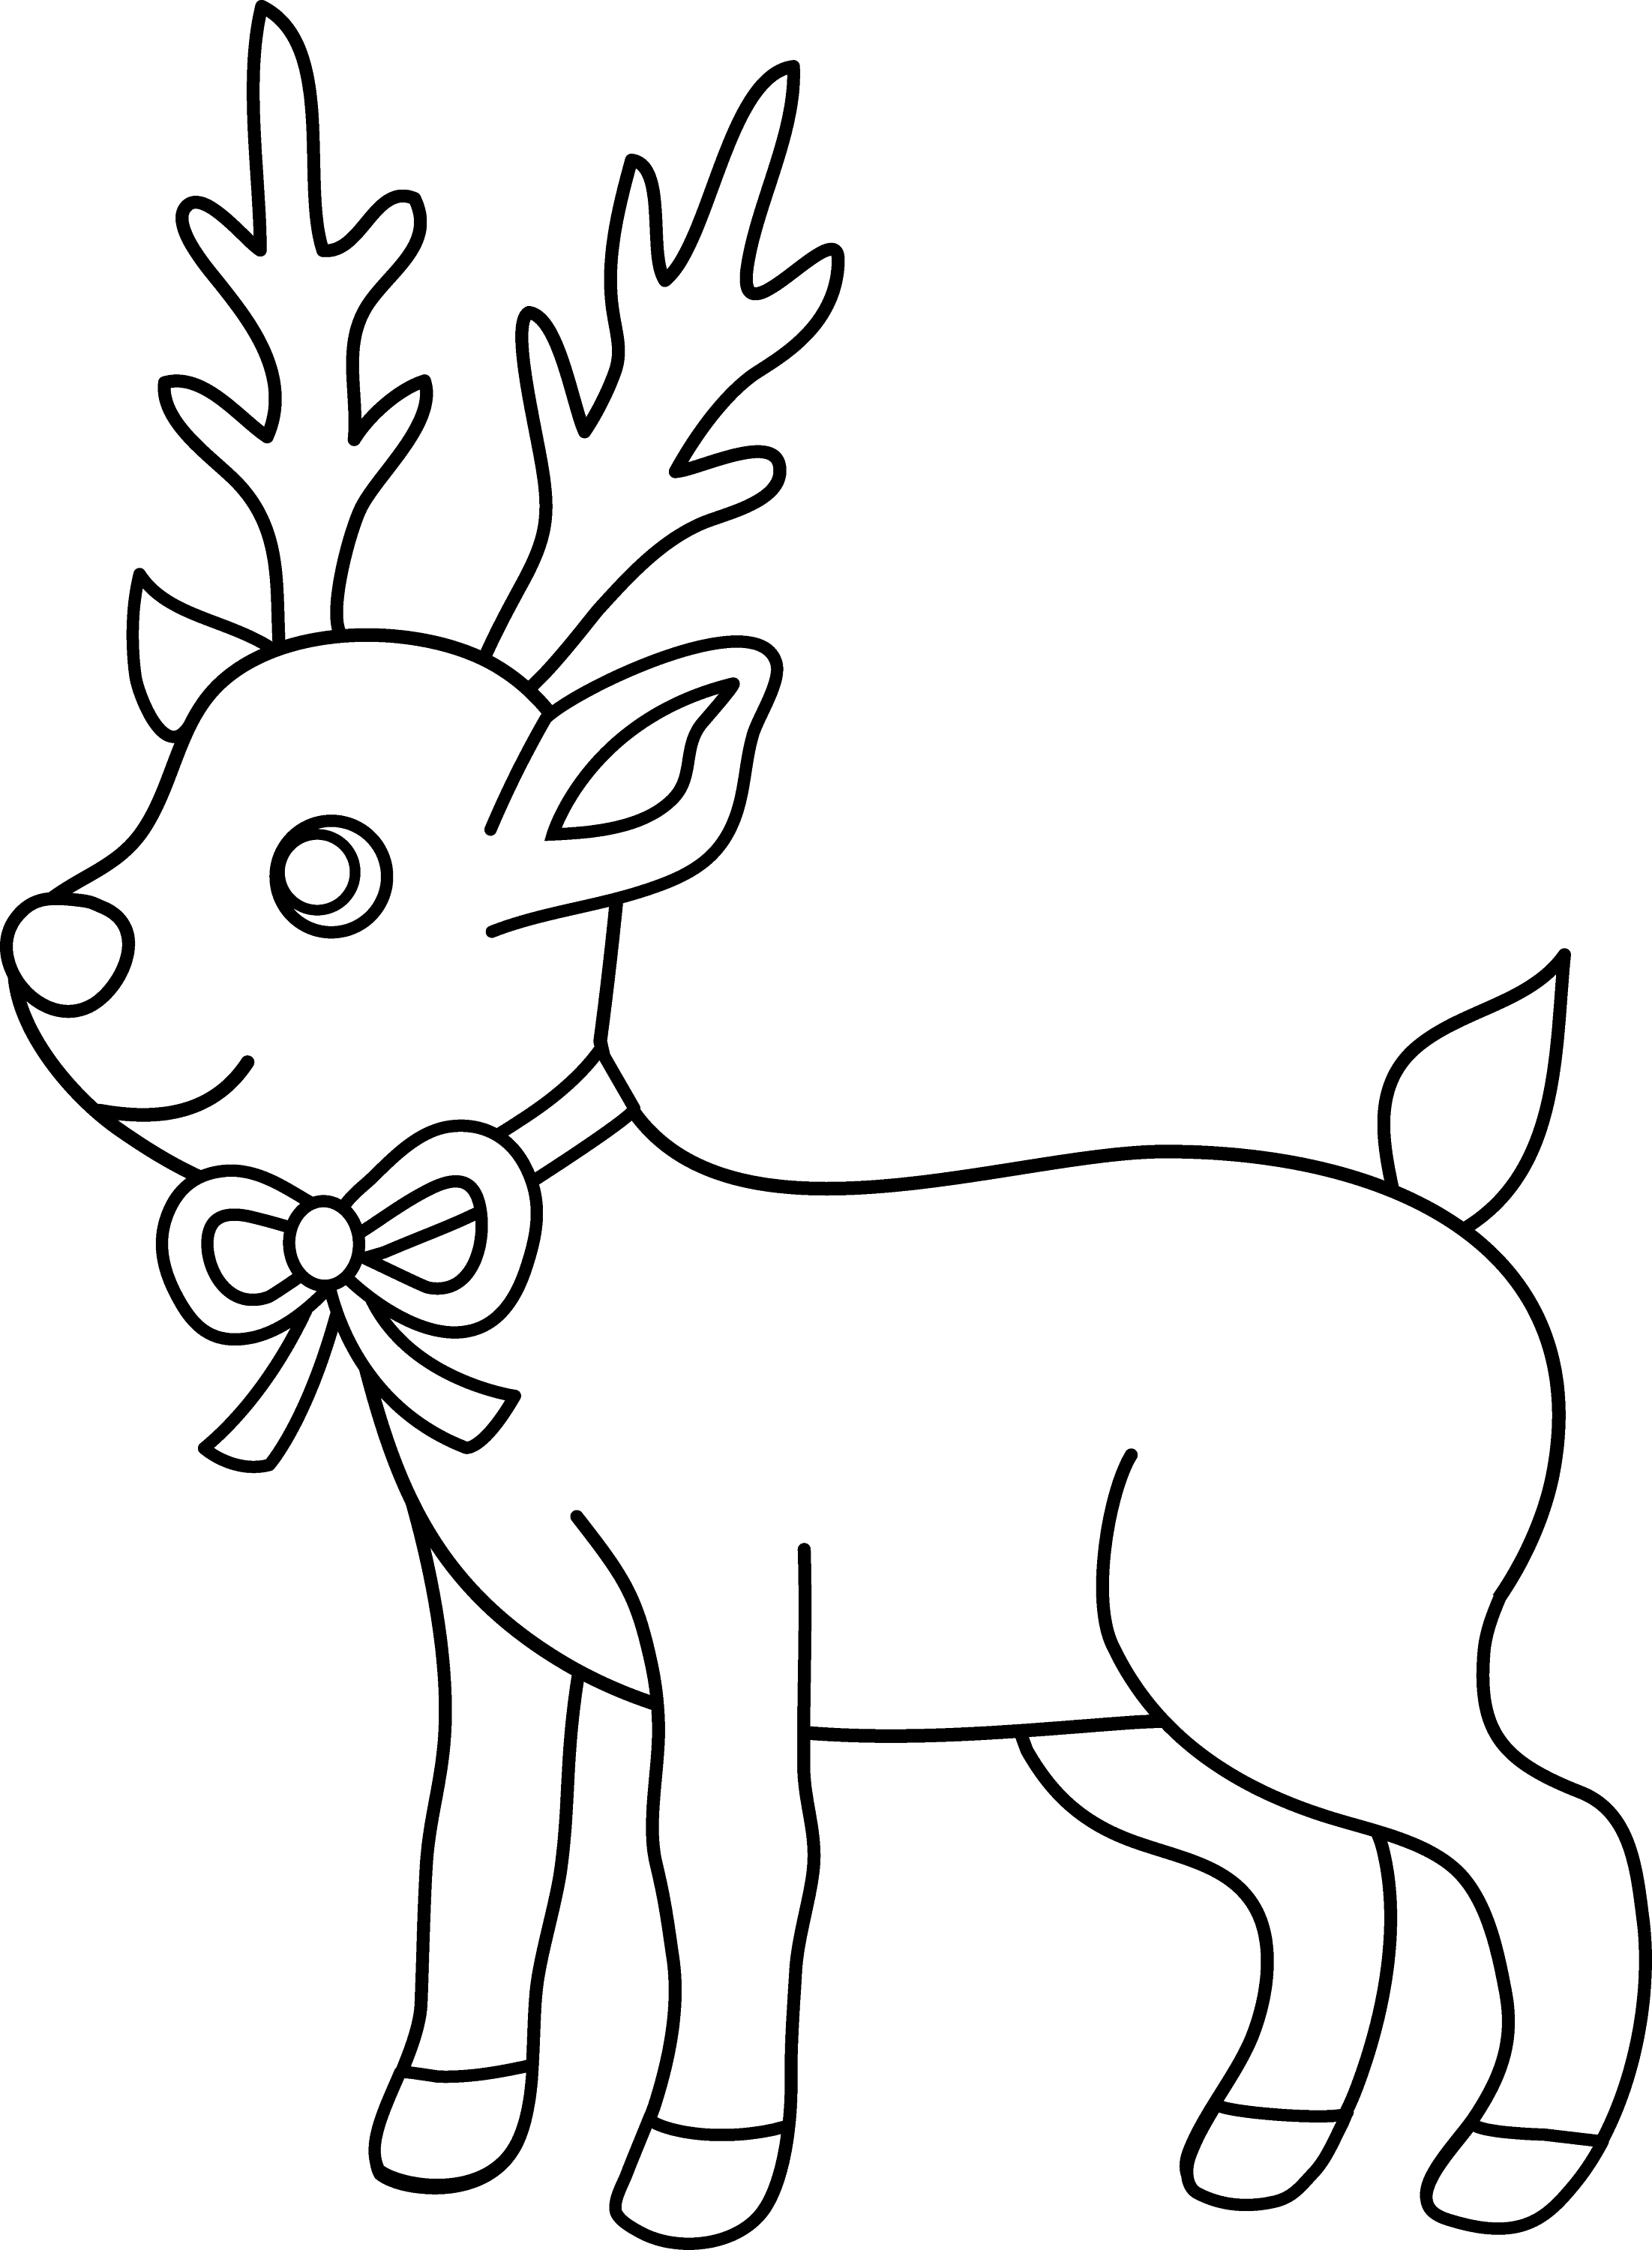 Christmas Reindeer Coloring Page - Free Clip Art